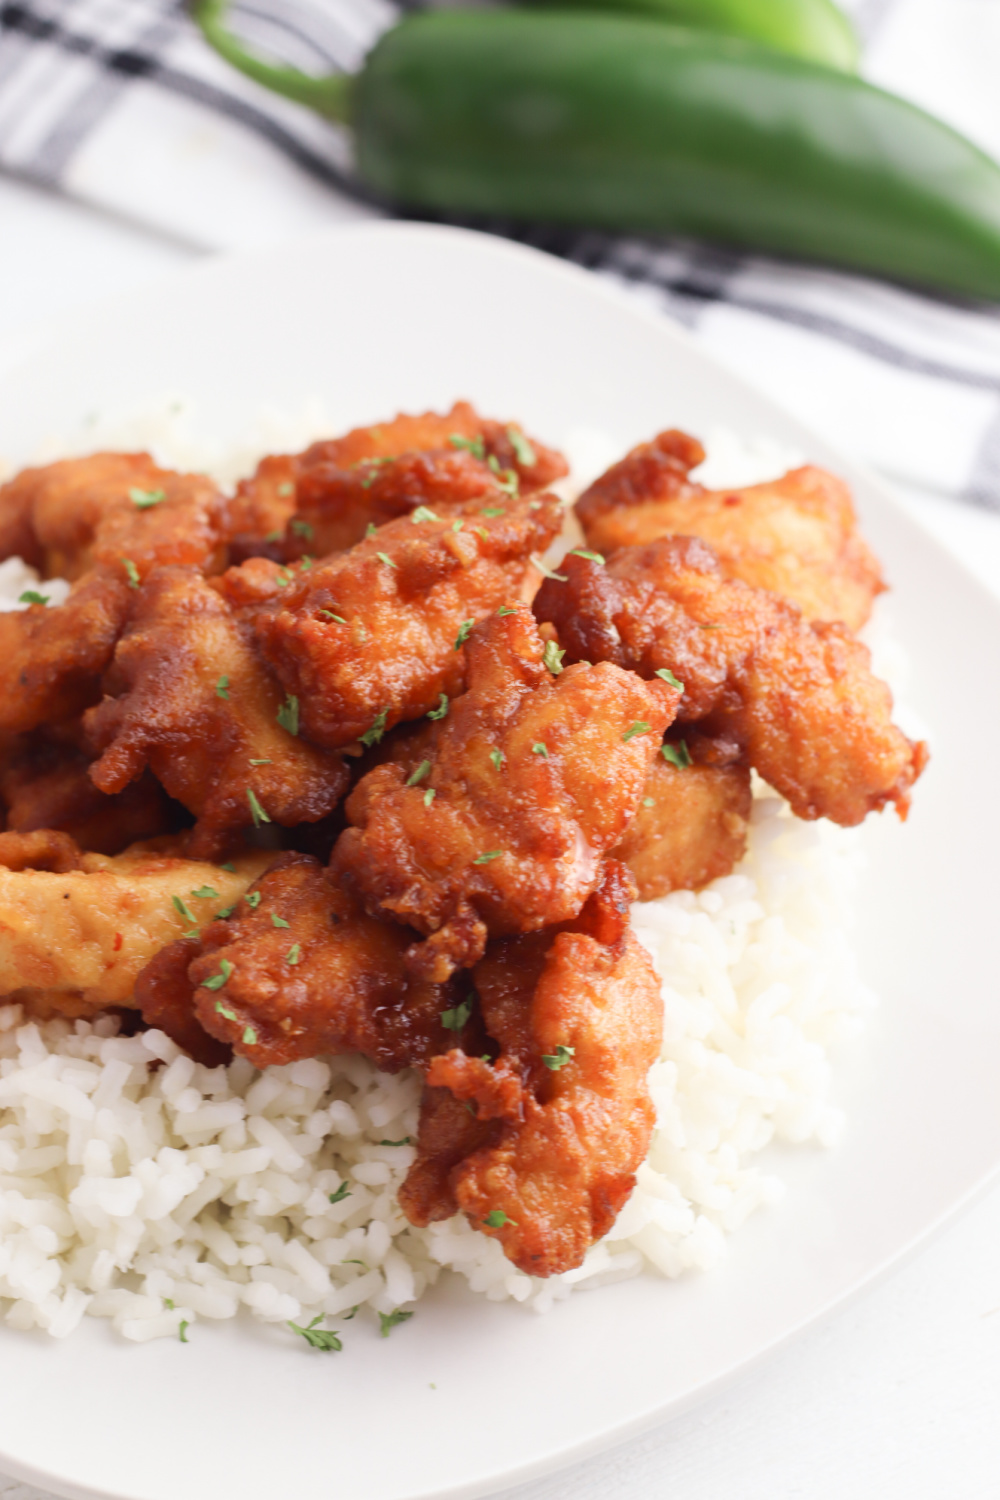 Thai Volcano Chicken Recipe on a bed of rice on a white plate.